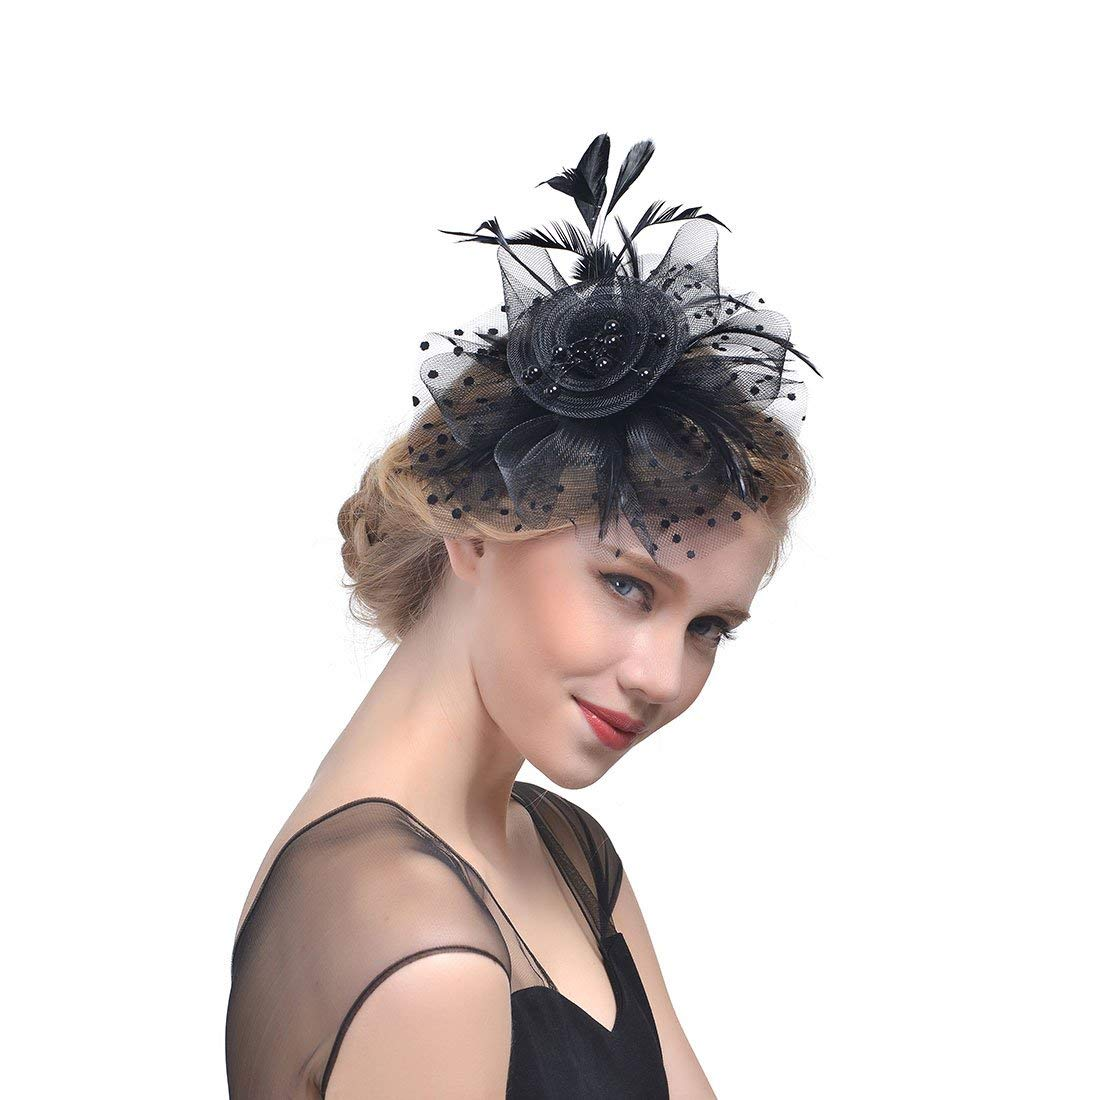 610f6f5fb40 Get Quotations · Industriu Fascinator Hats for Woman Kentucky Derby Headband  Fascinator Clip with Black Feathers